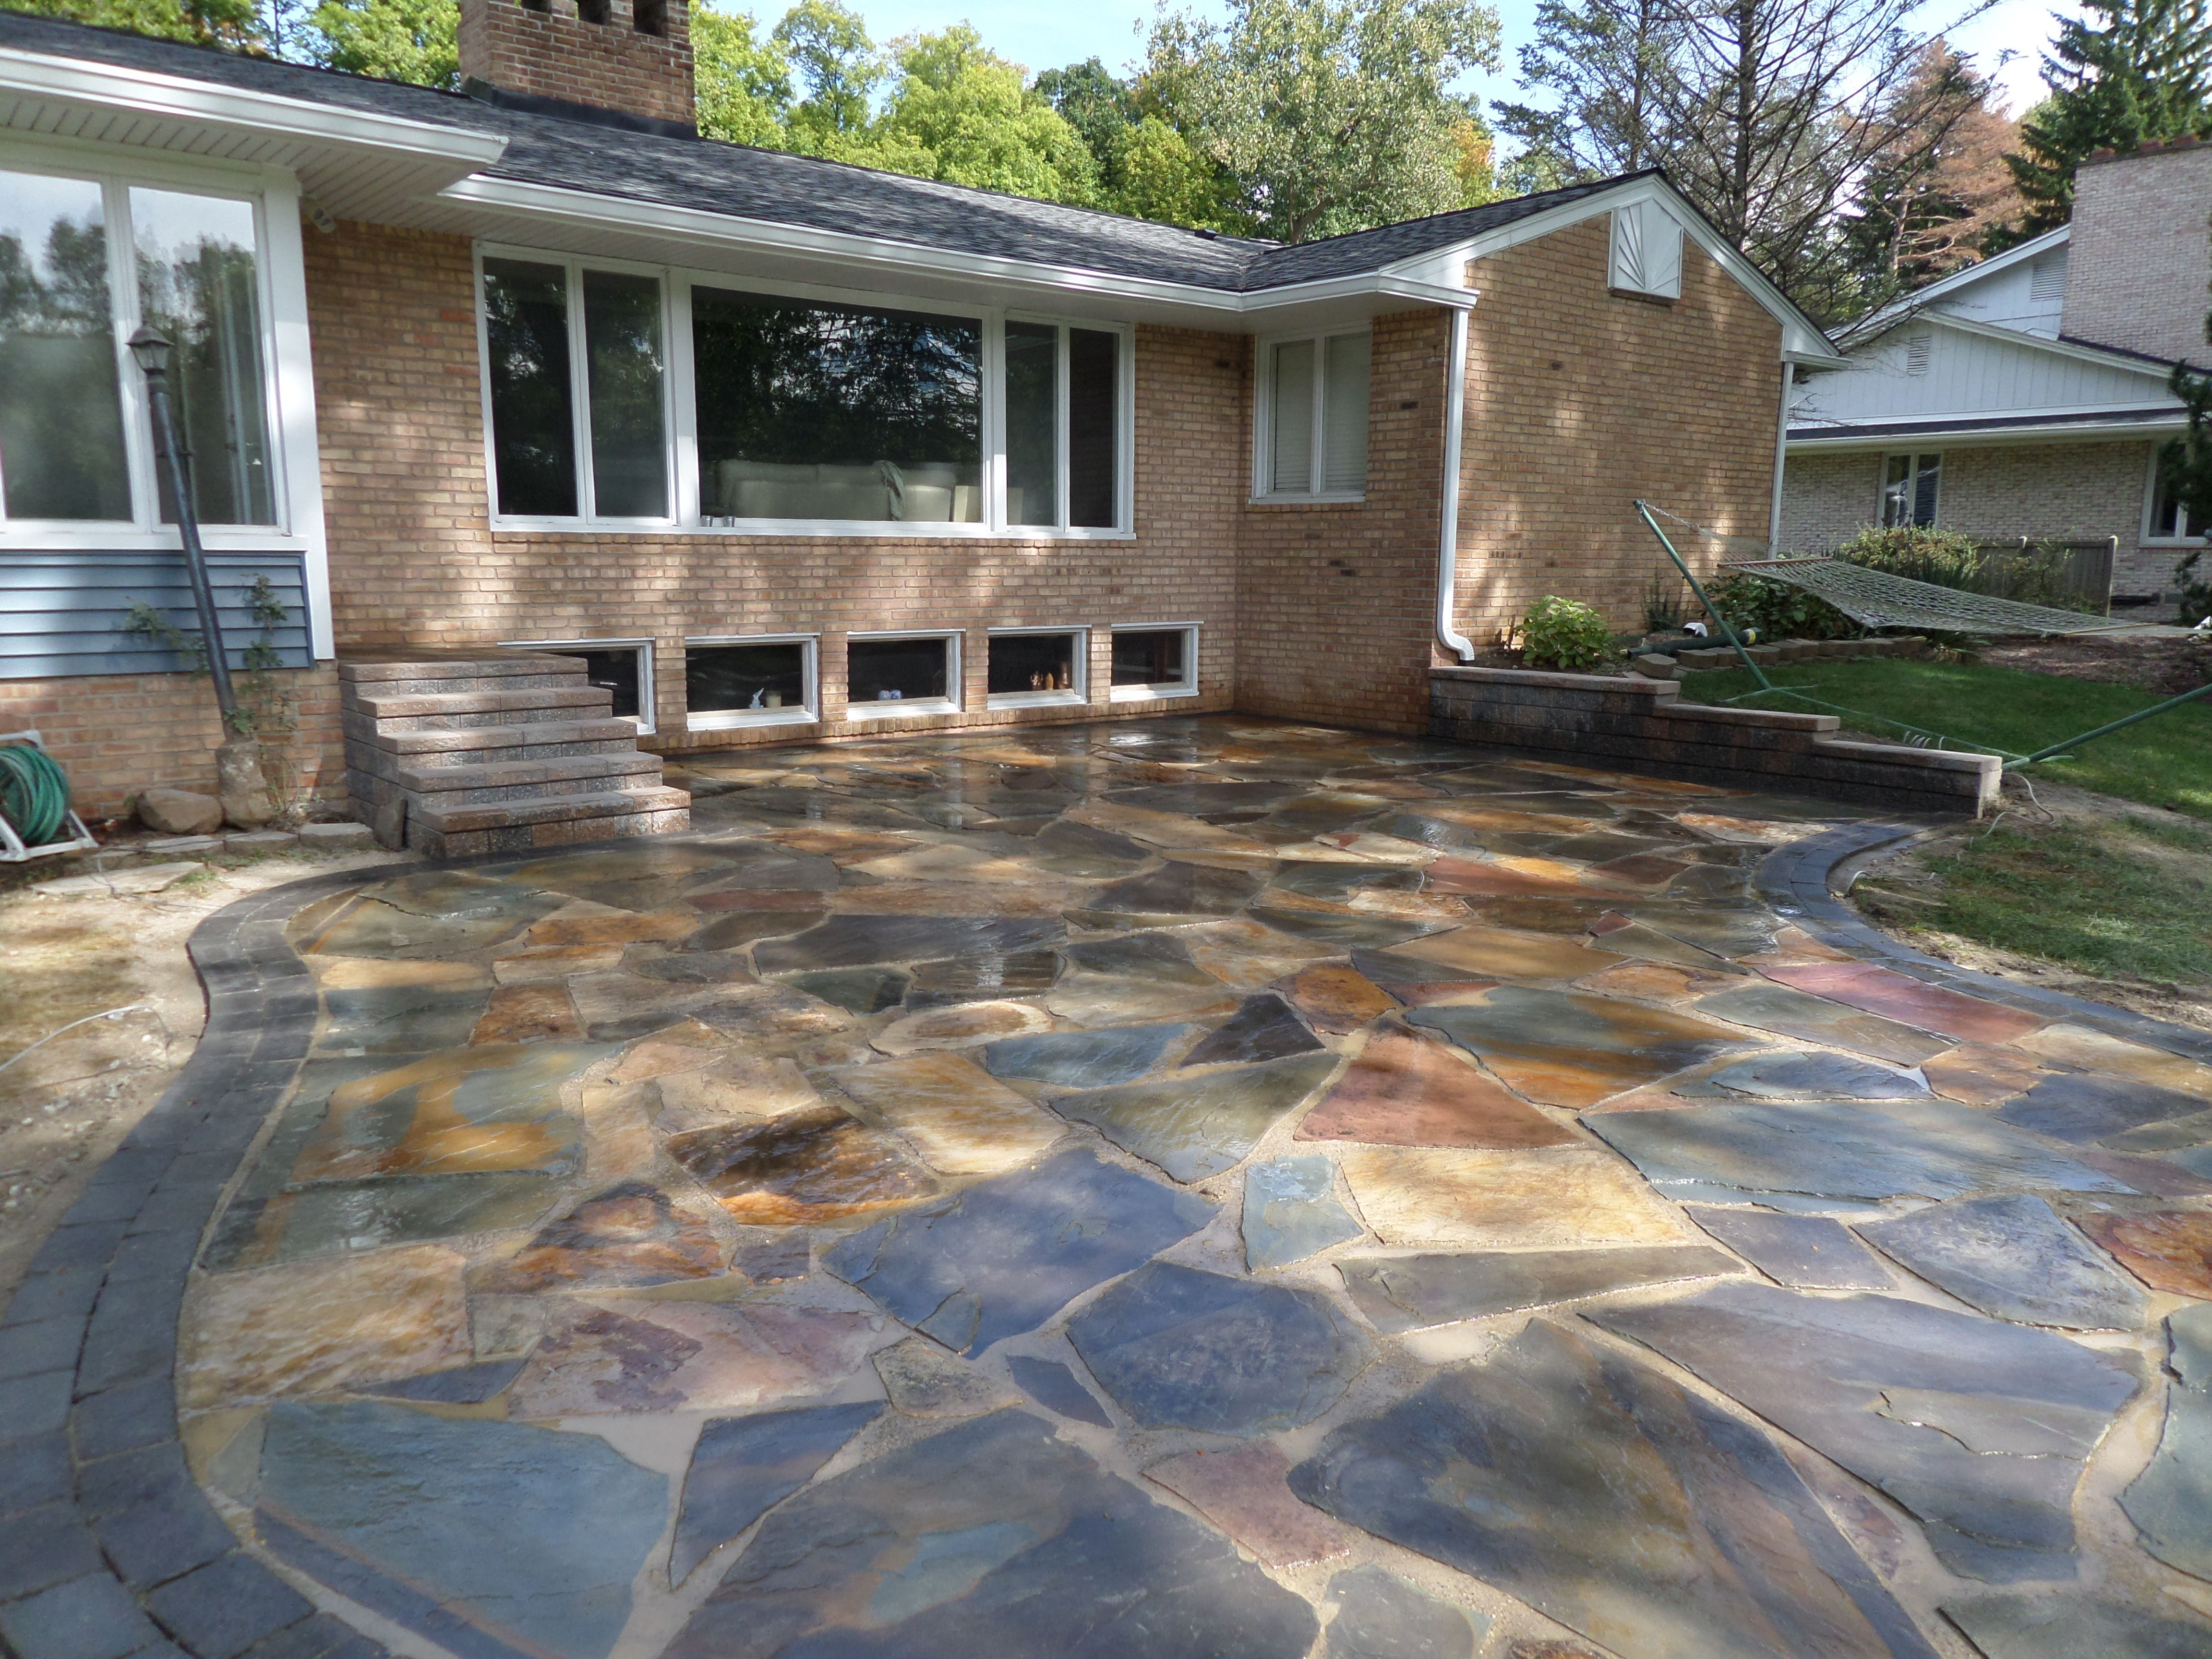 Natural Stone Patio. New York Flagstone With A Oaks Colonnade Paver Border.  Exquisitehardscapes.